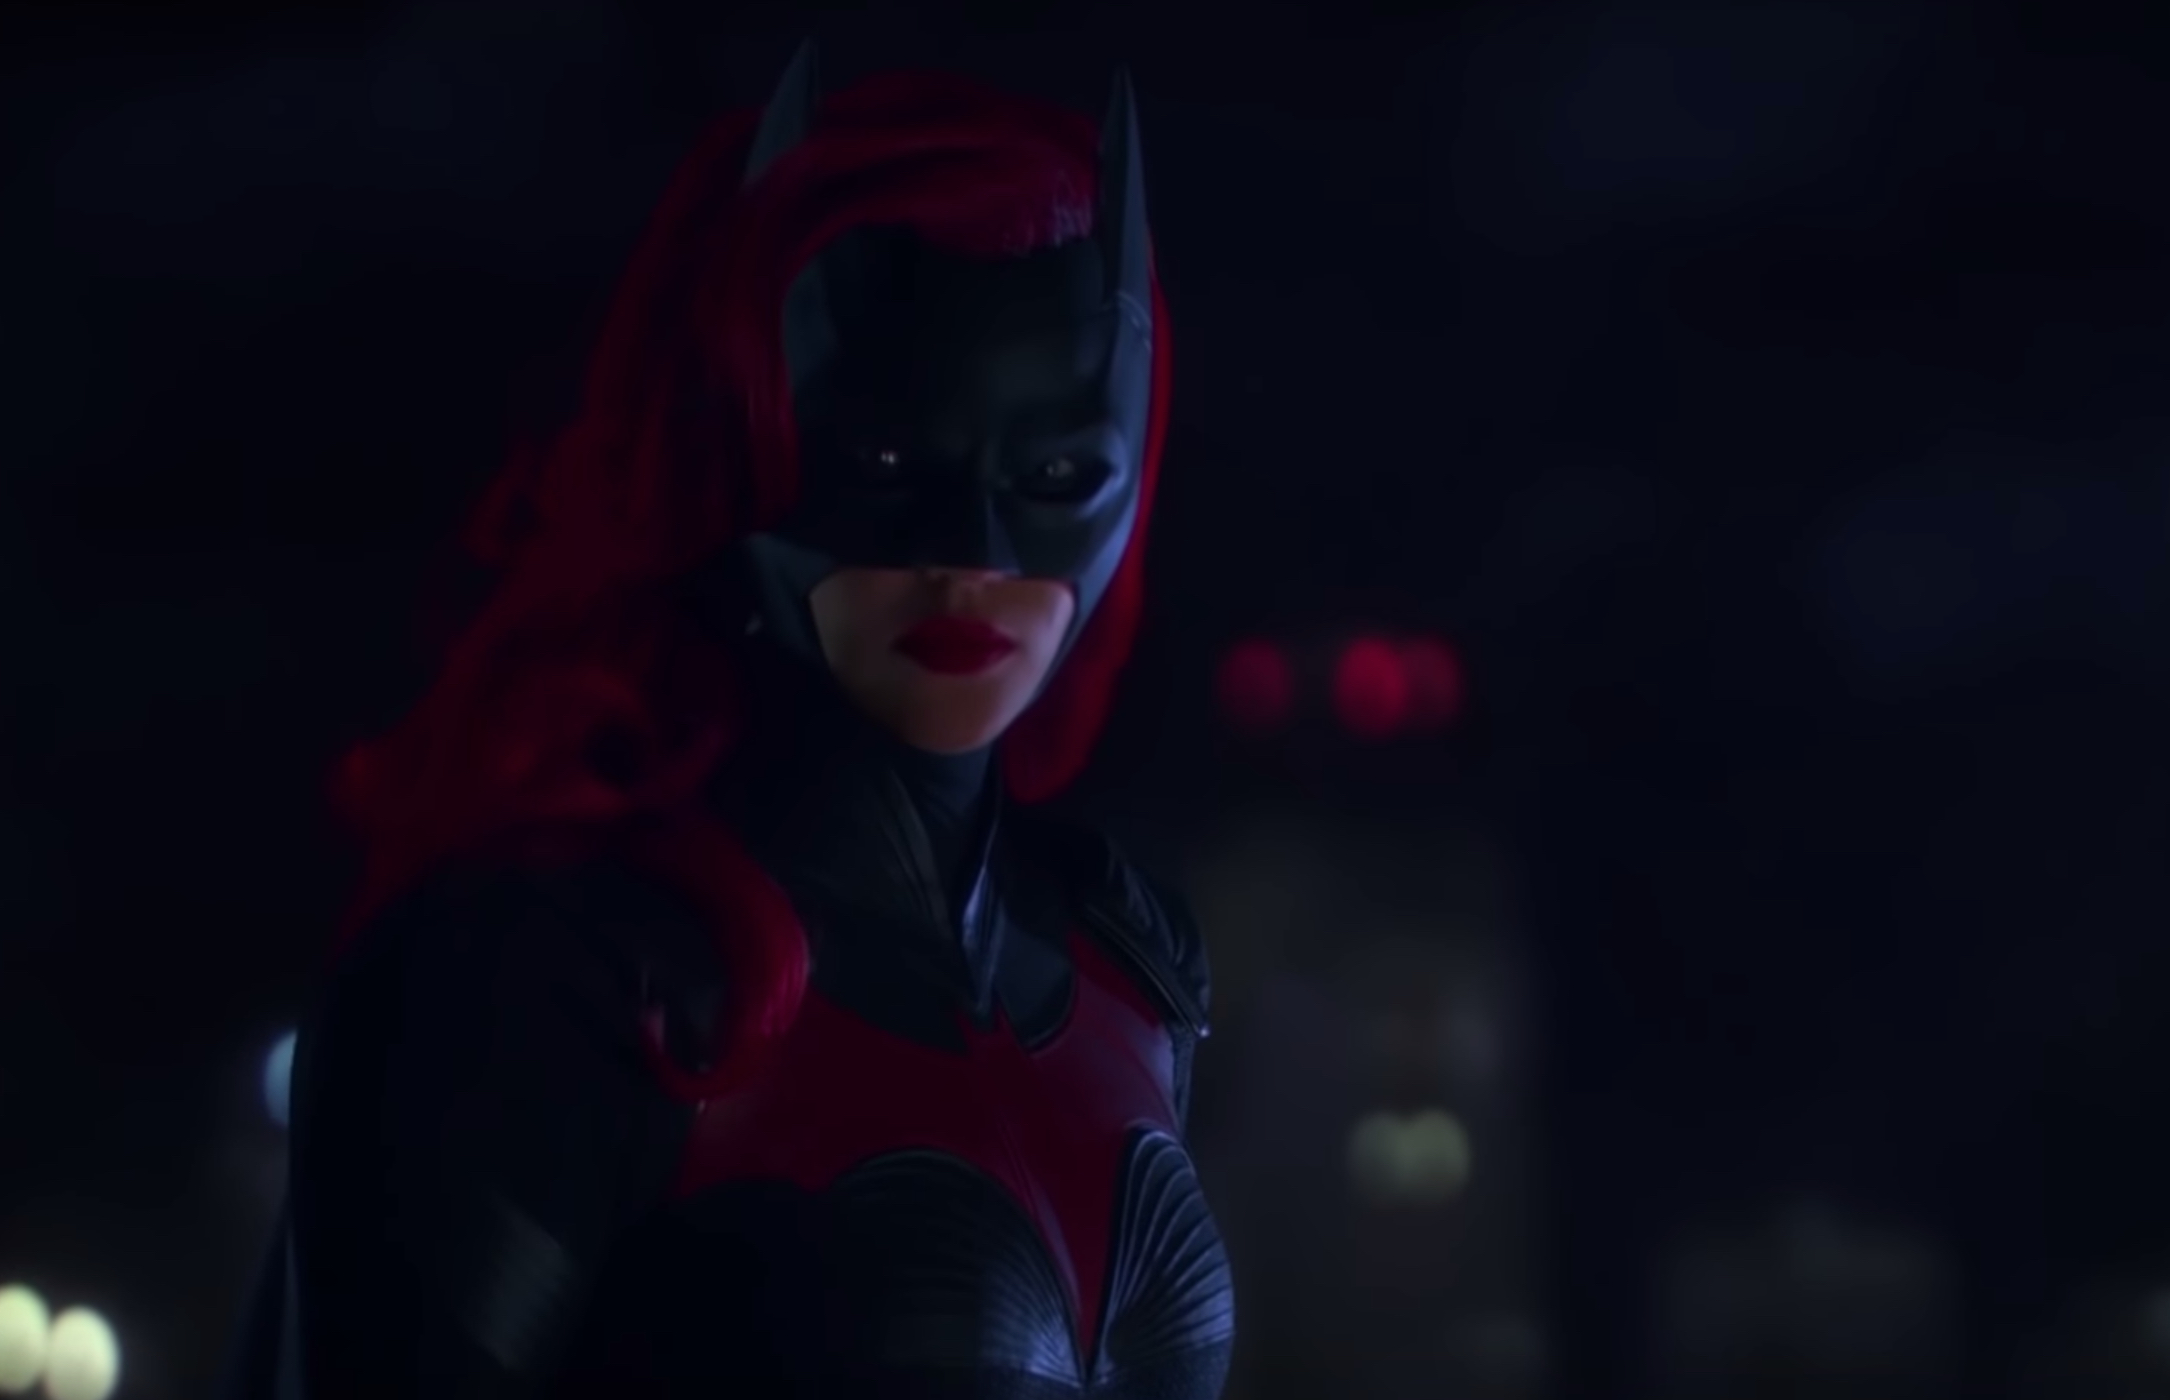 Batwoman': Ruby Rose Transforms into New Superhero in